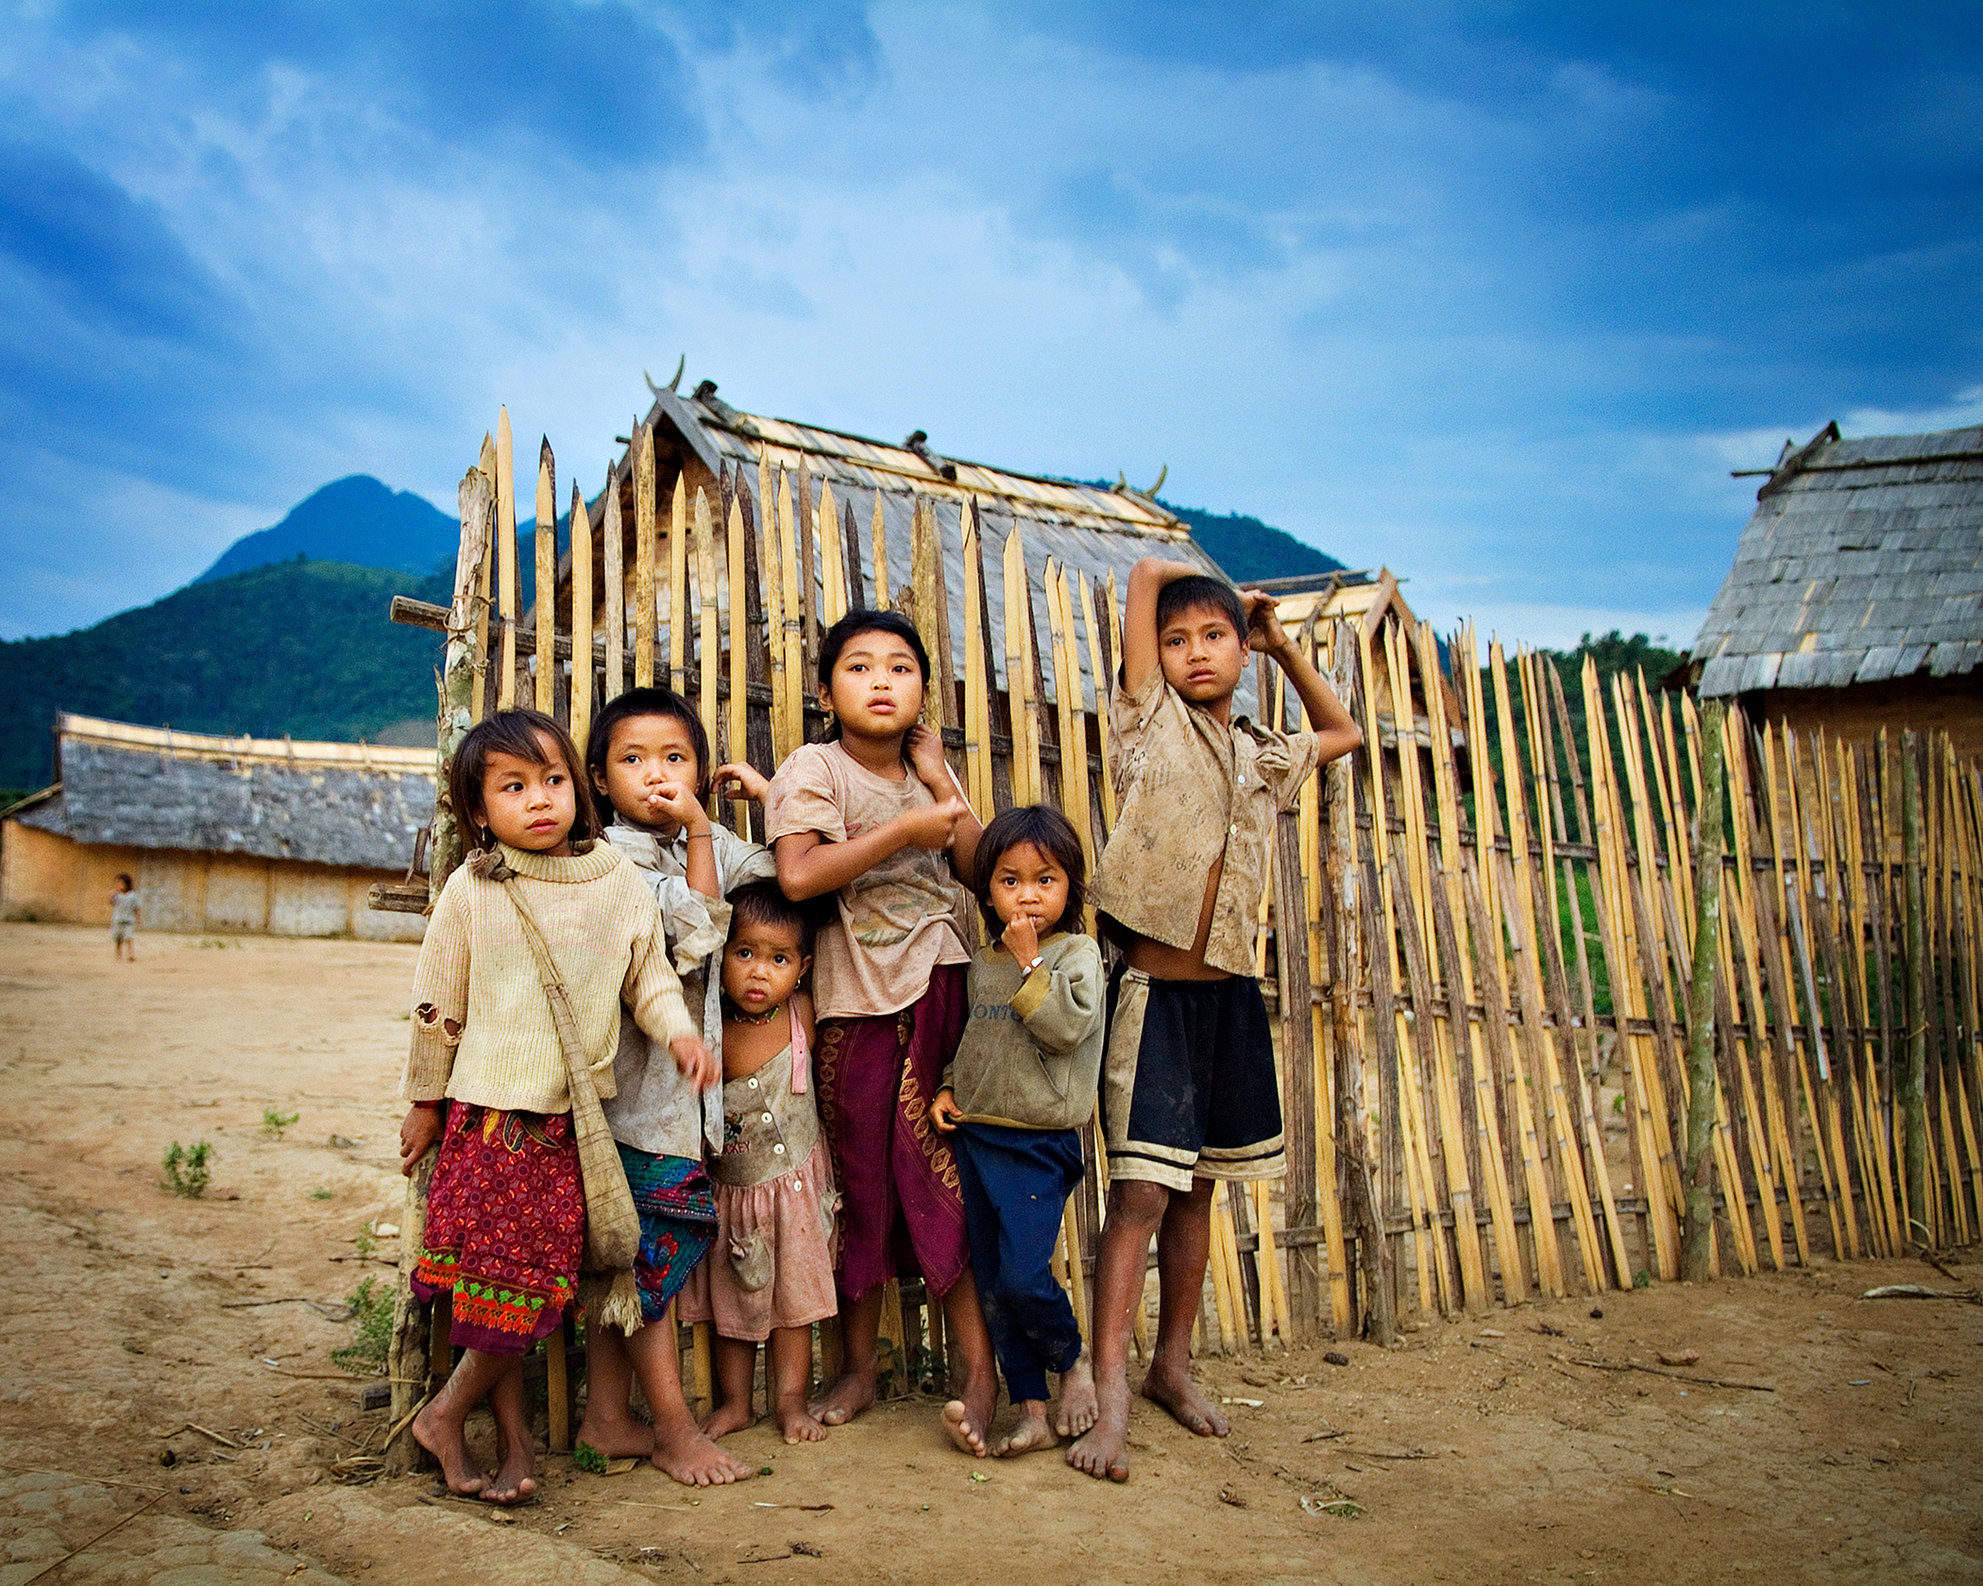 Laos Village Kids